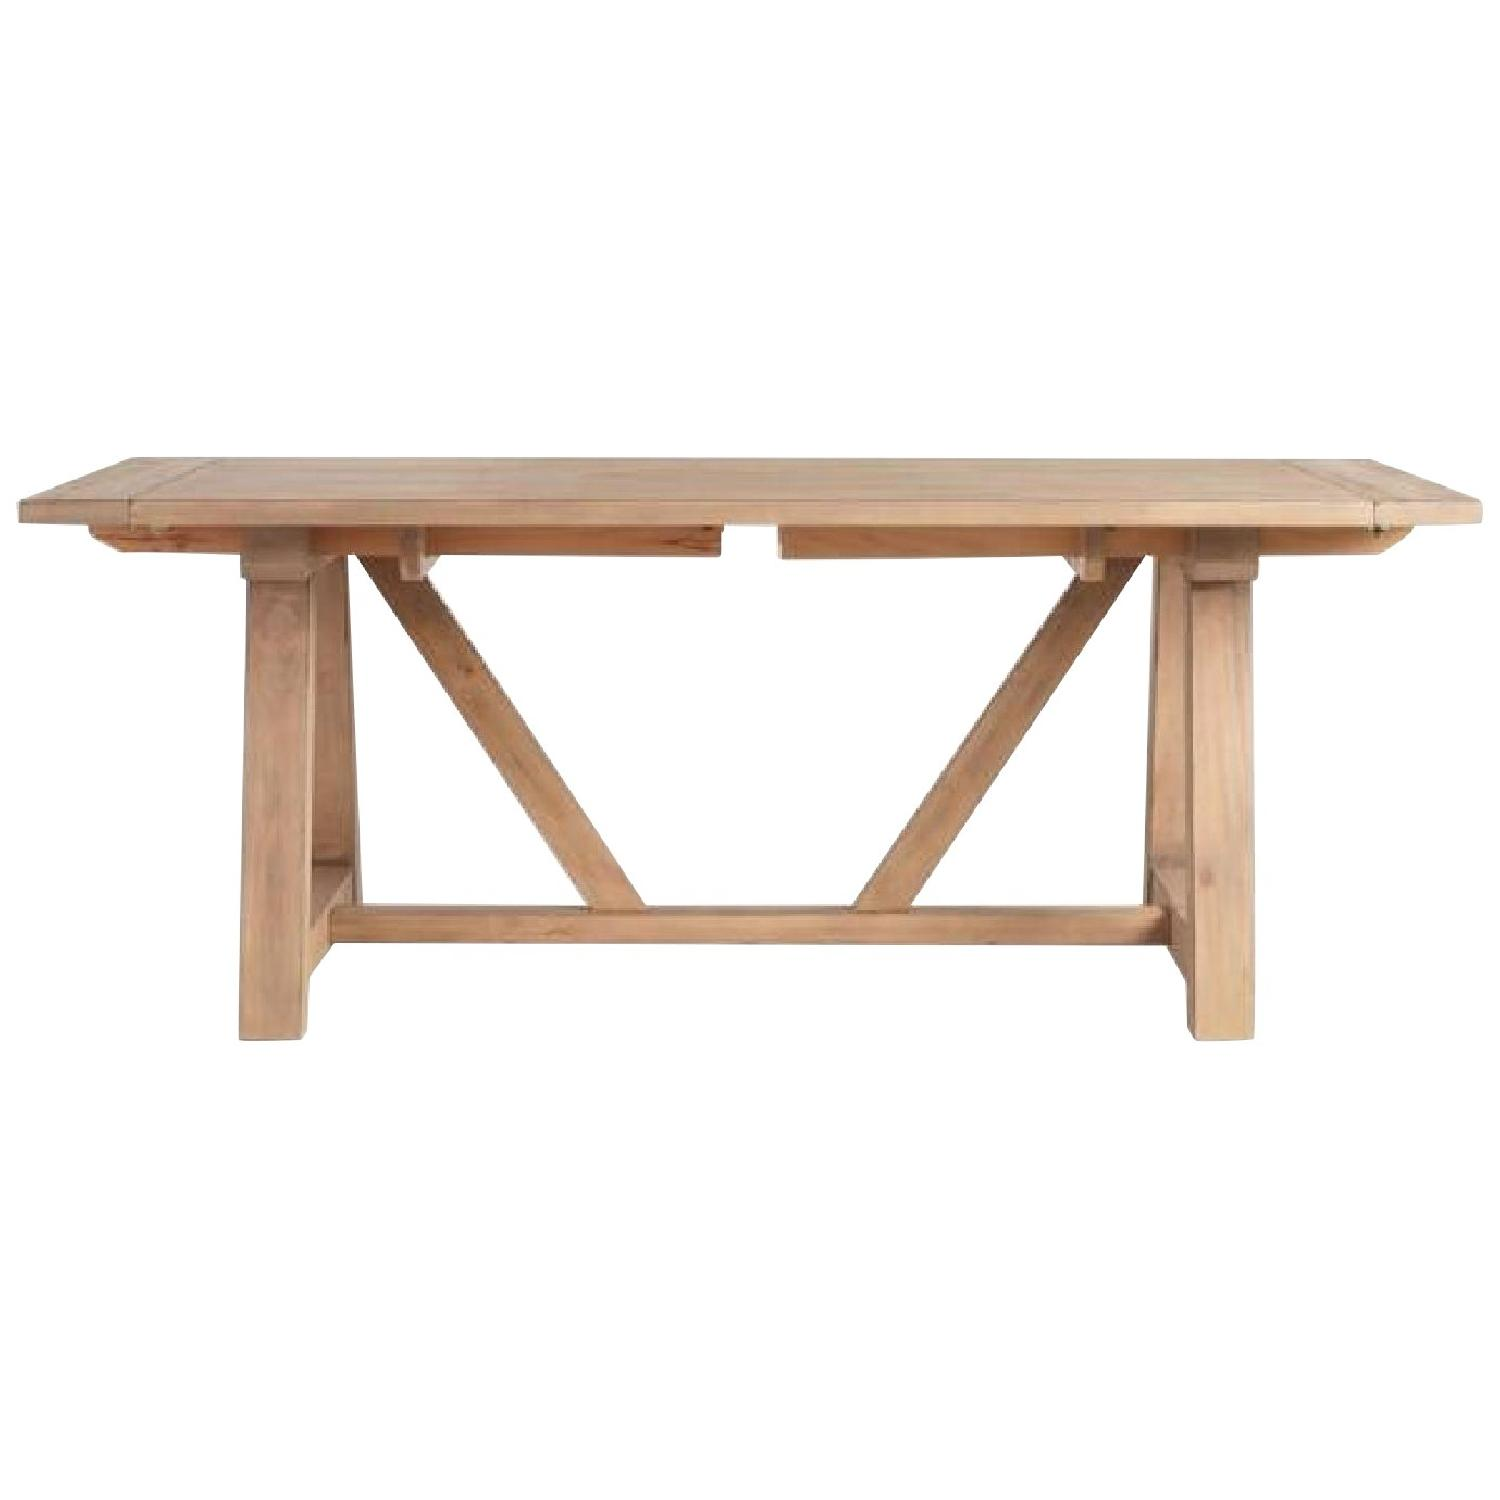 World Market Farmhouse Extension Dining Table - image-0